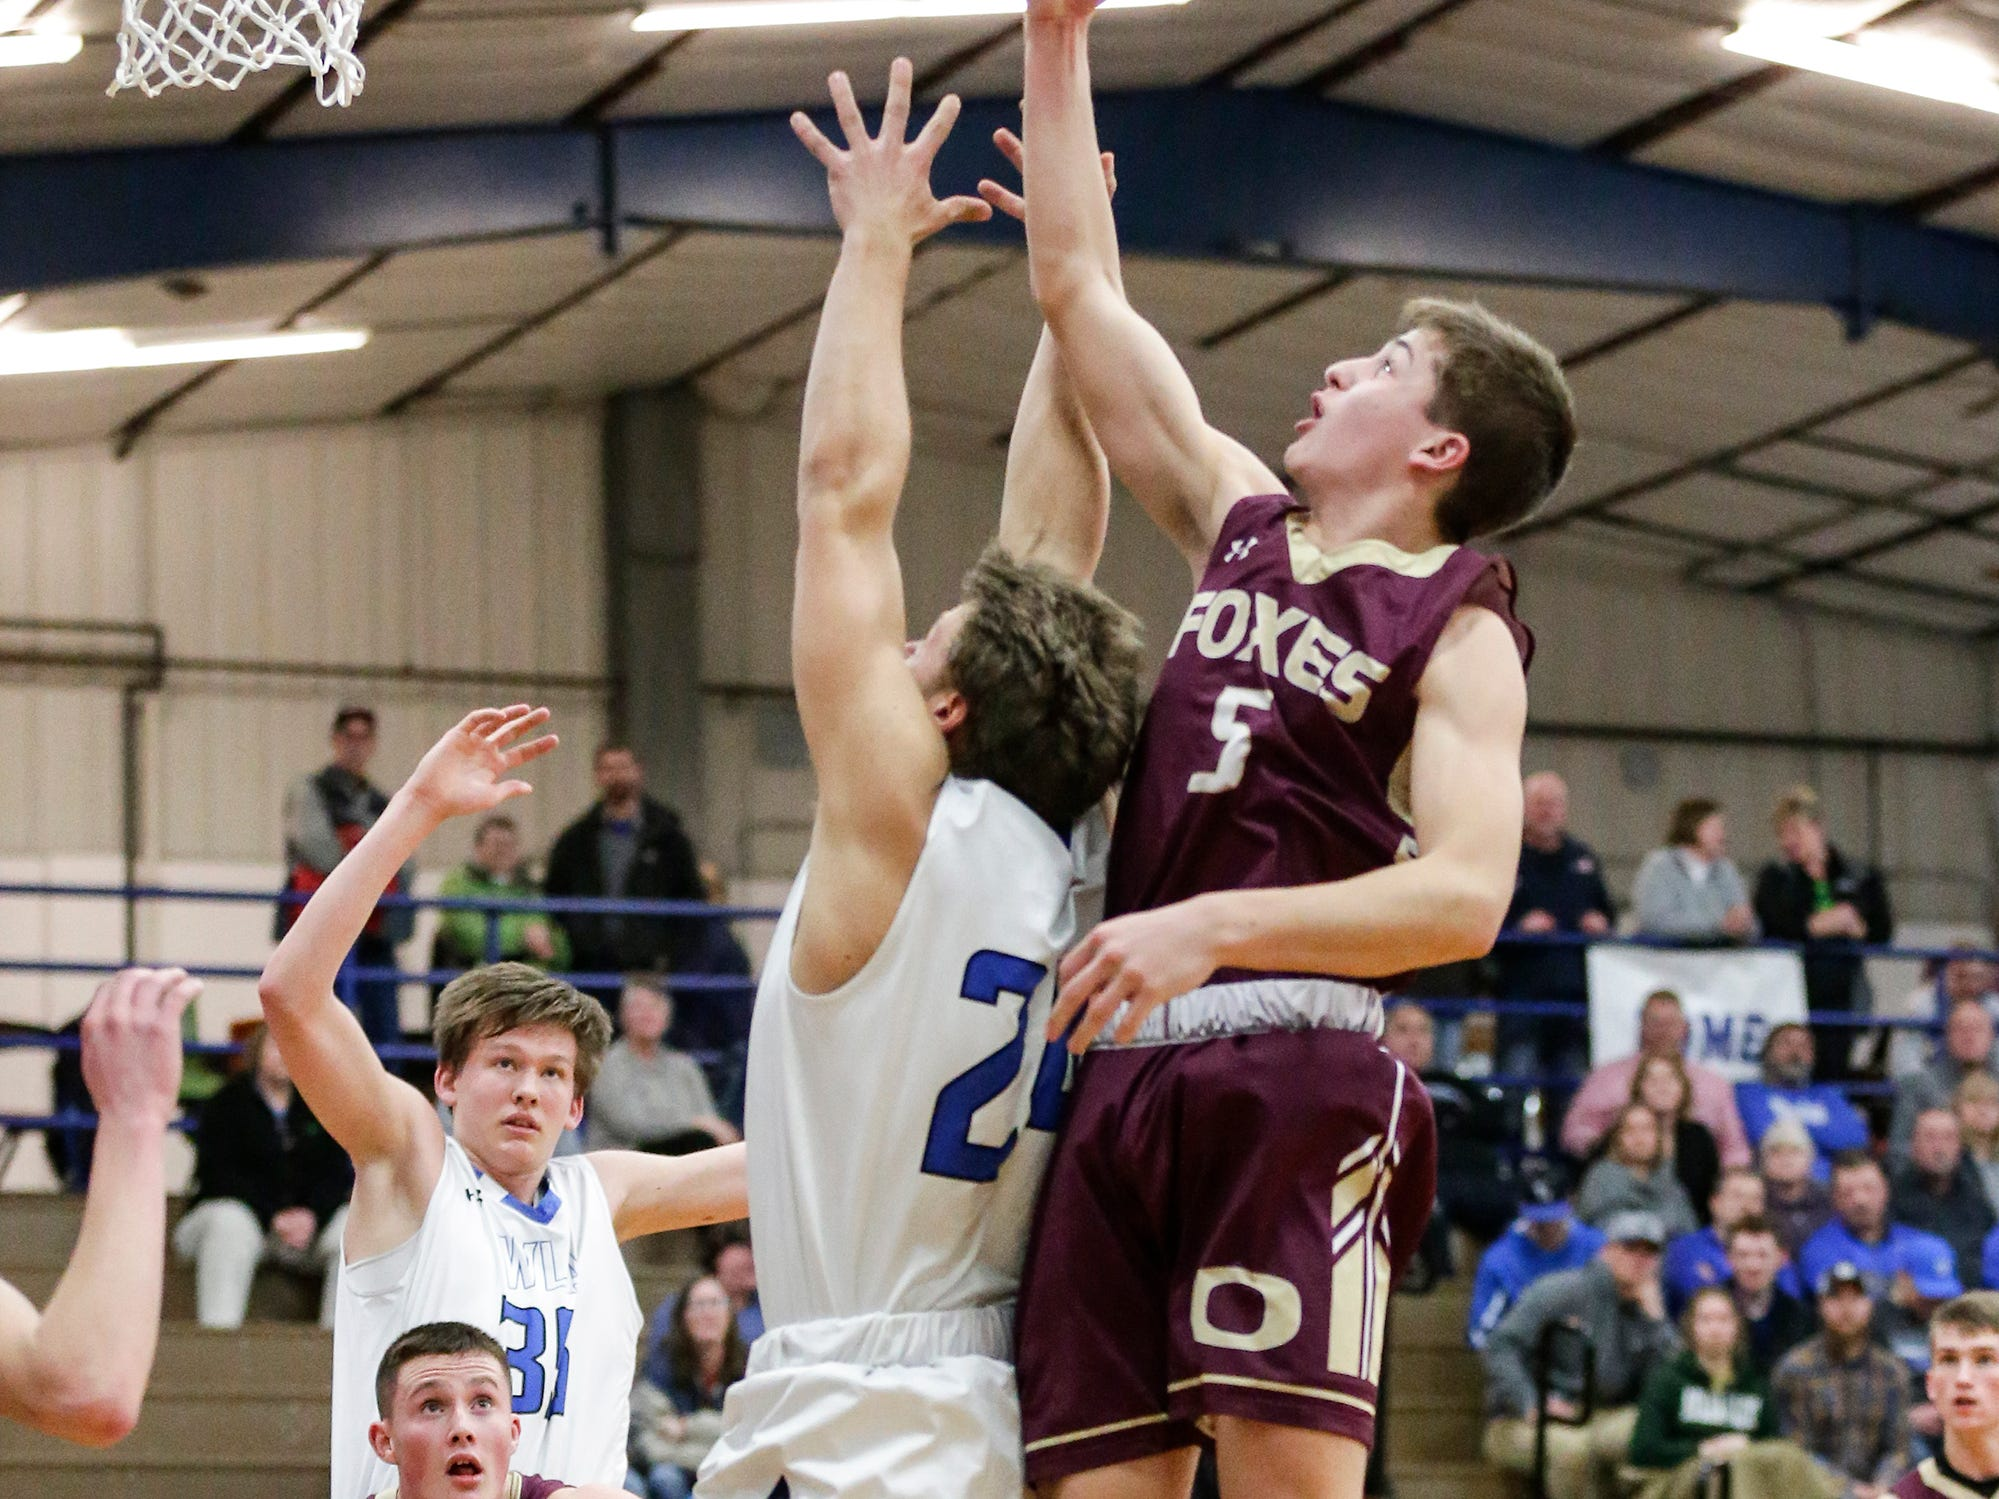 Winnebago Lutheran Academy boys basketball's Gideon Wenig (24) and Omro High School's Cody Schoeni (5) go up for a rebound during their game Friday, February 1, 2019 in Fond du Lac. Doug Raflik/USA TODAY NETWORK-Wisconsin